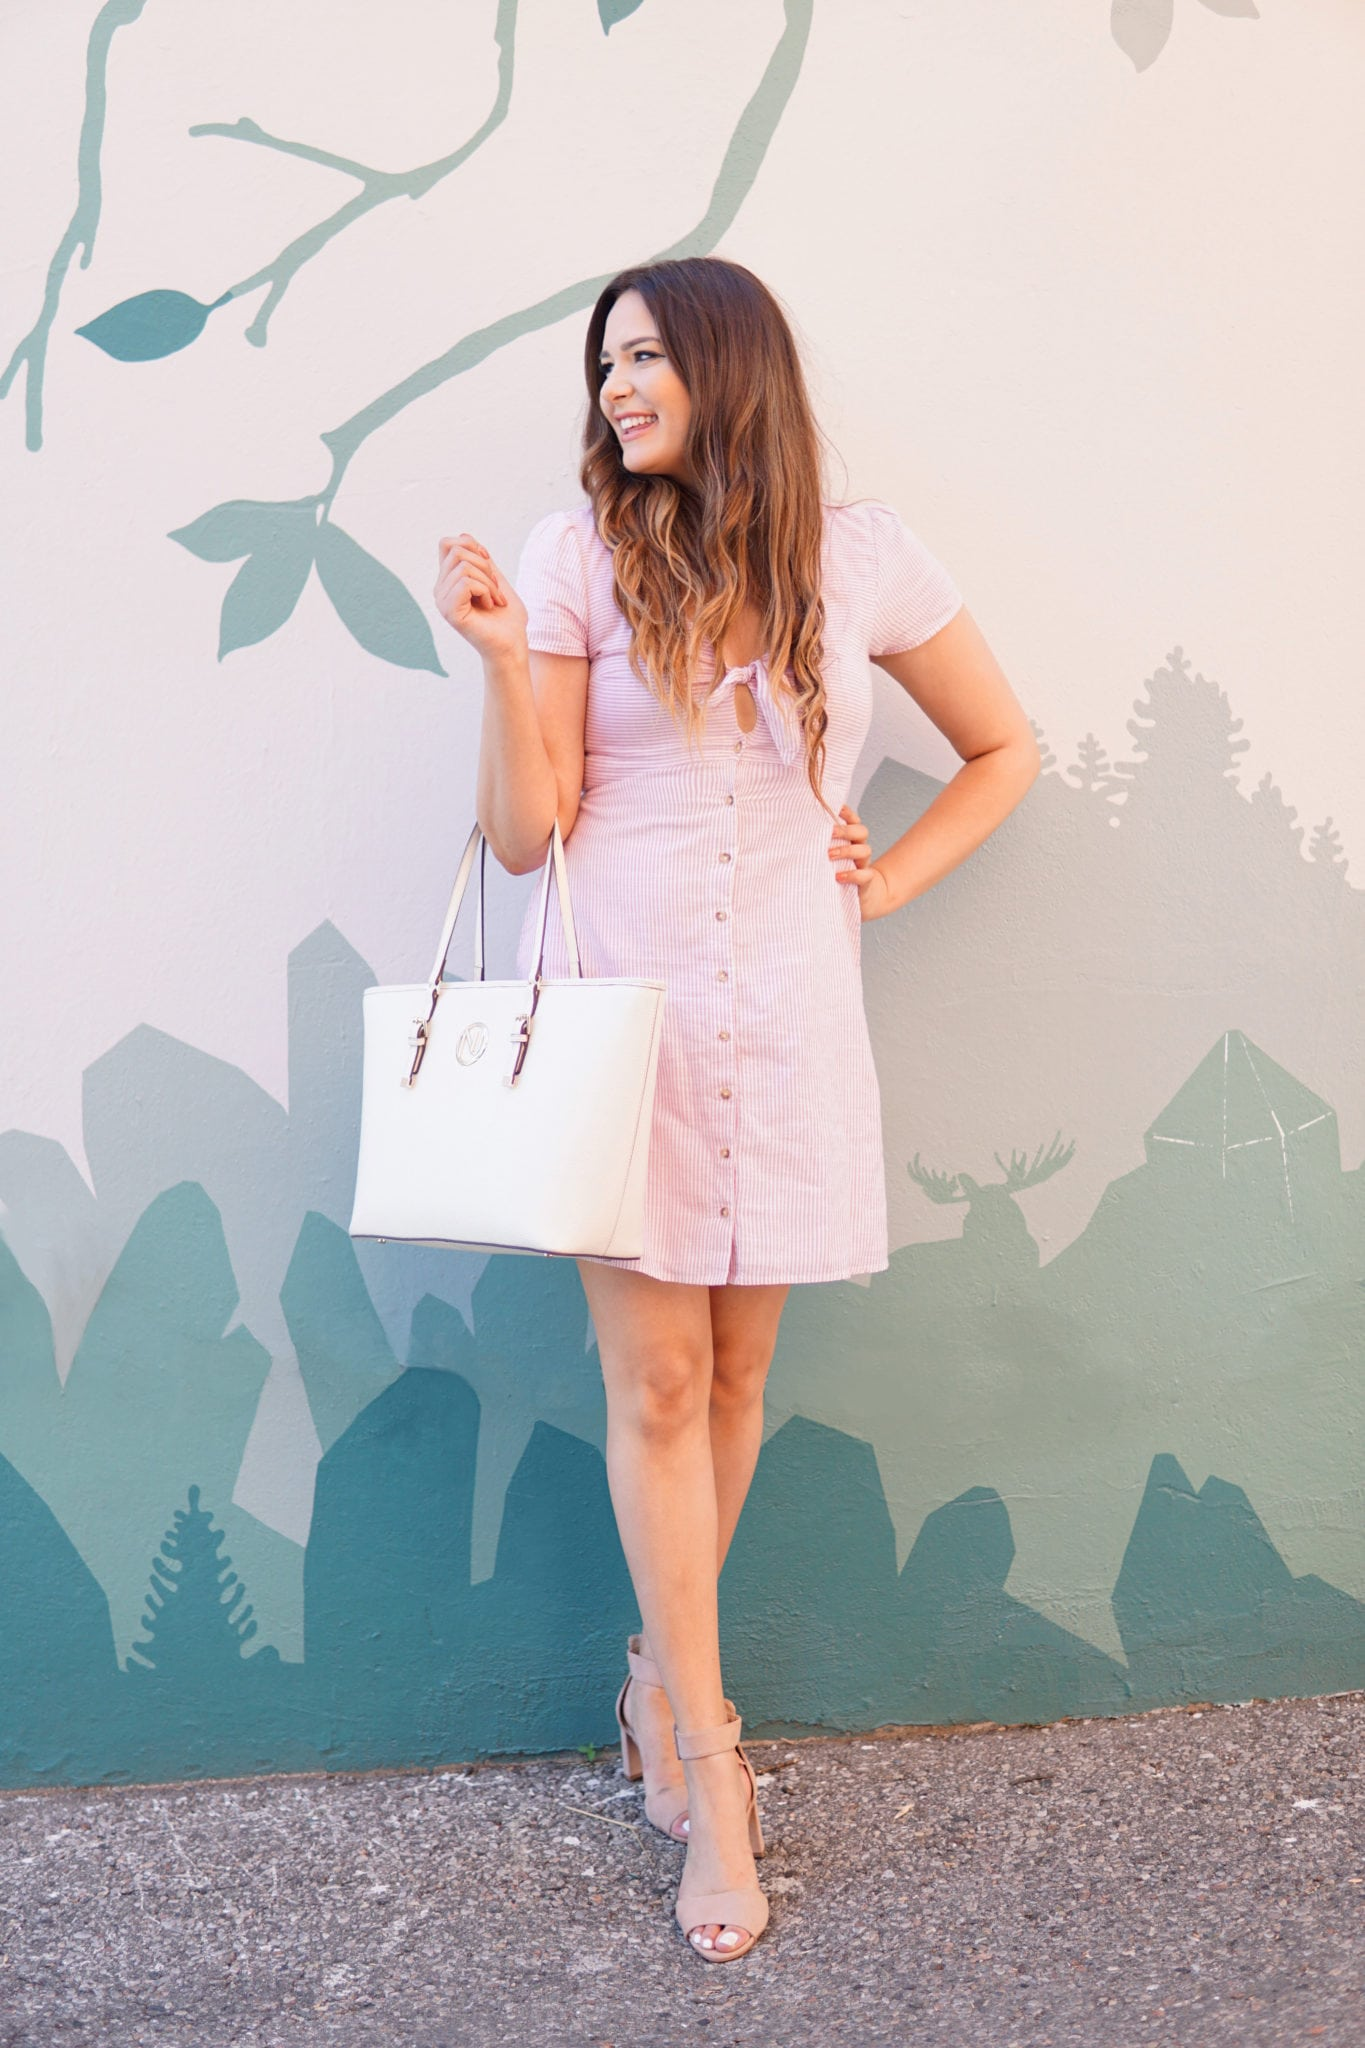 Beauty Blogger Mash Elle Pretty, Elegant Dresses To Wear To